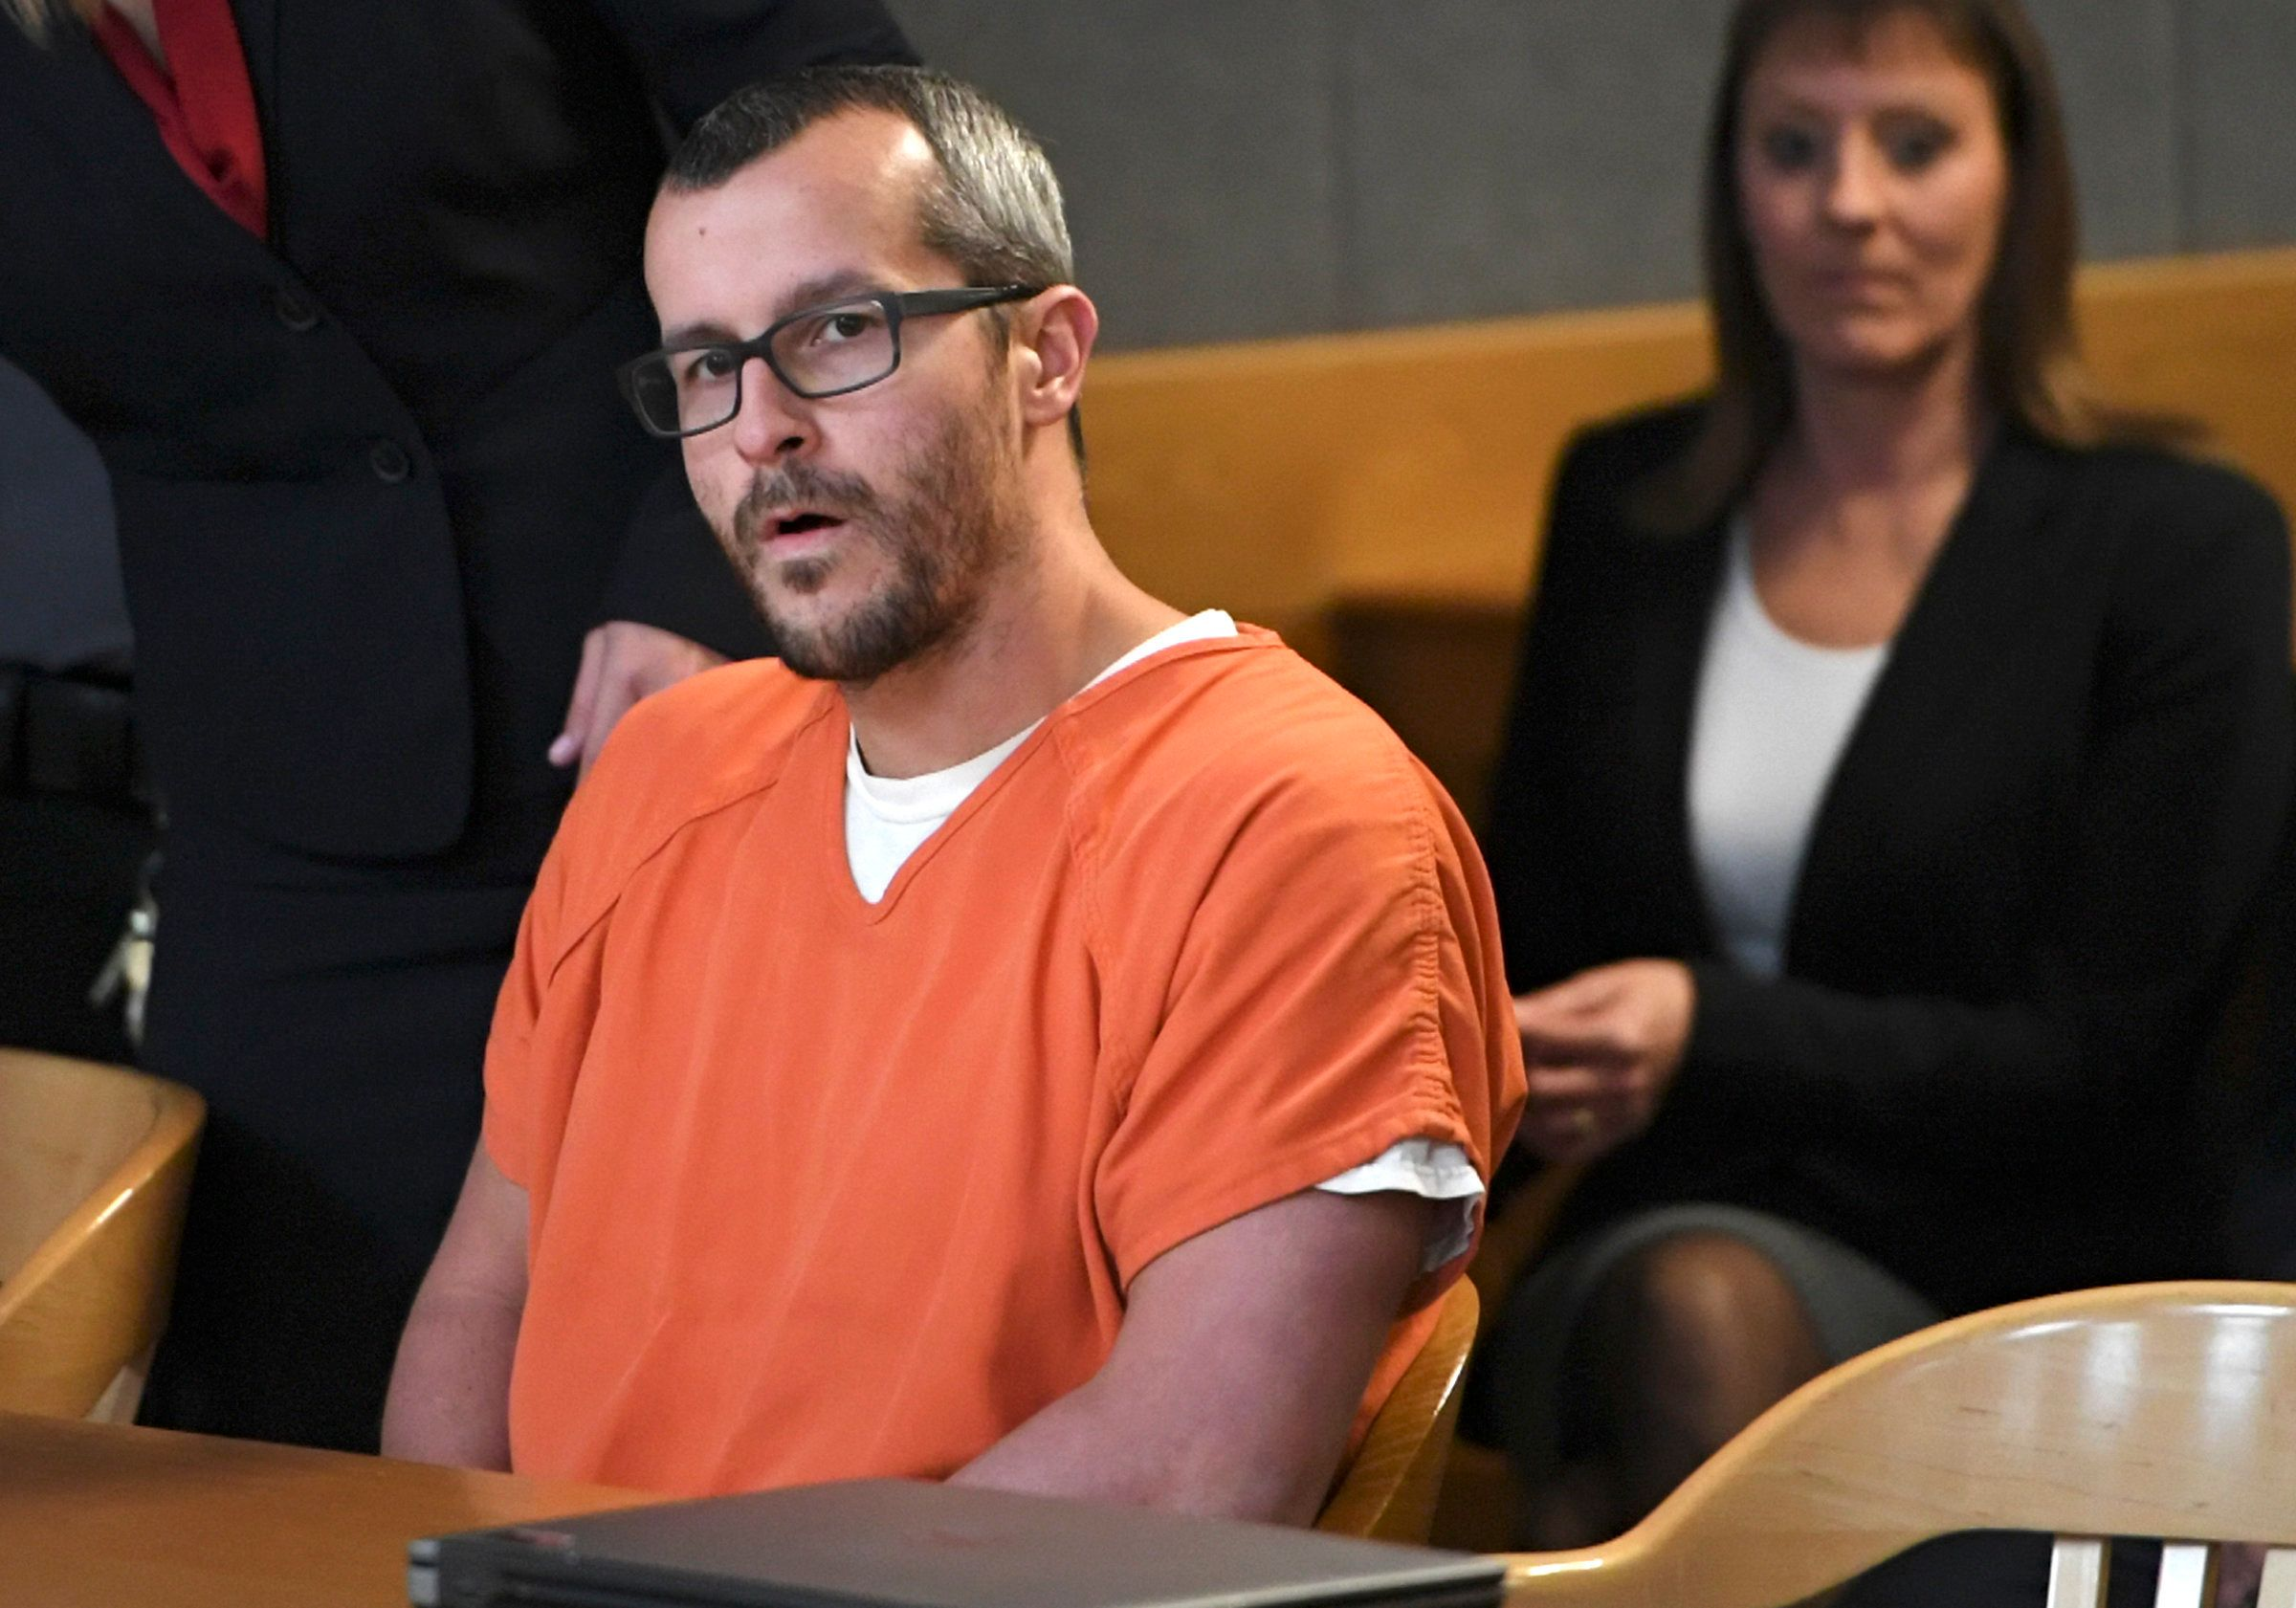 In this Nov. 19, 2018 file photo, Christopher Watts sits in court for his sentencing hearing at the Weld County Courthouse in